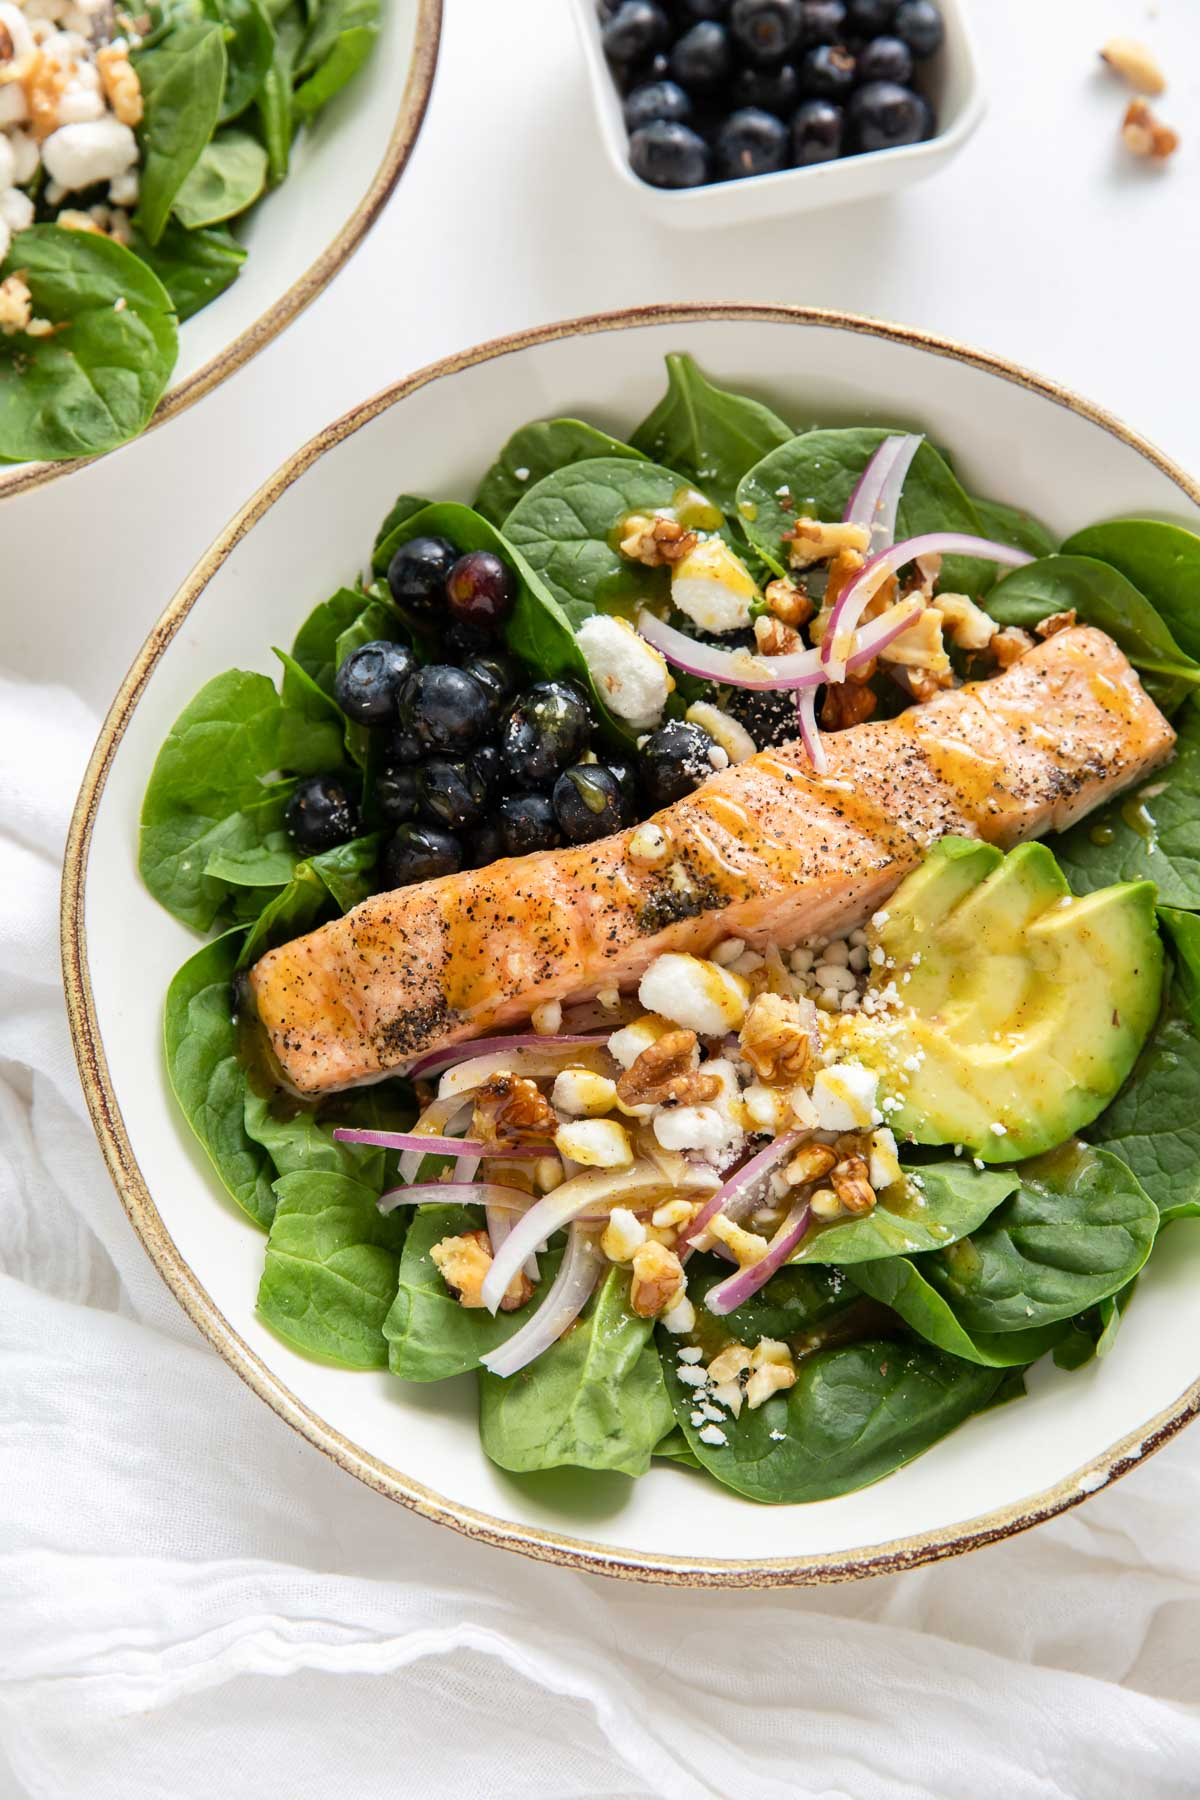 salmon salad with spinach, avocado, red onion, walnuts and goat cheese